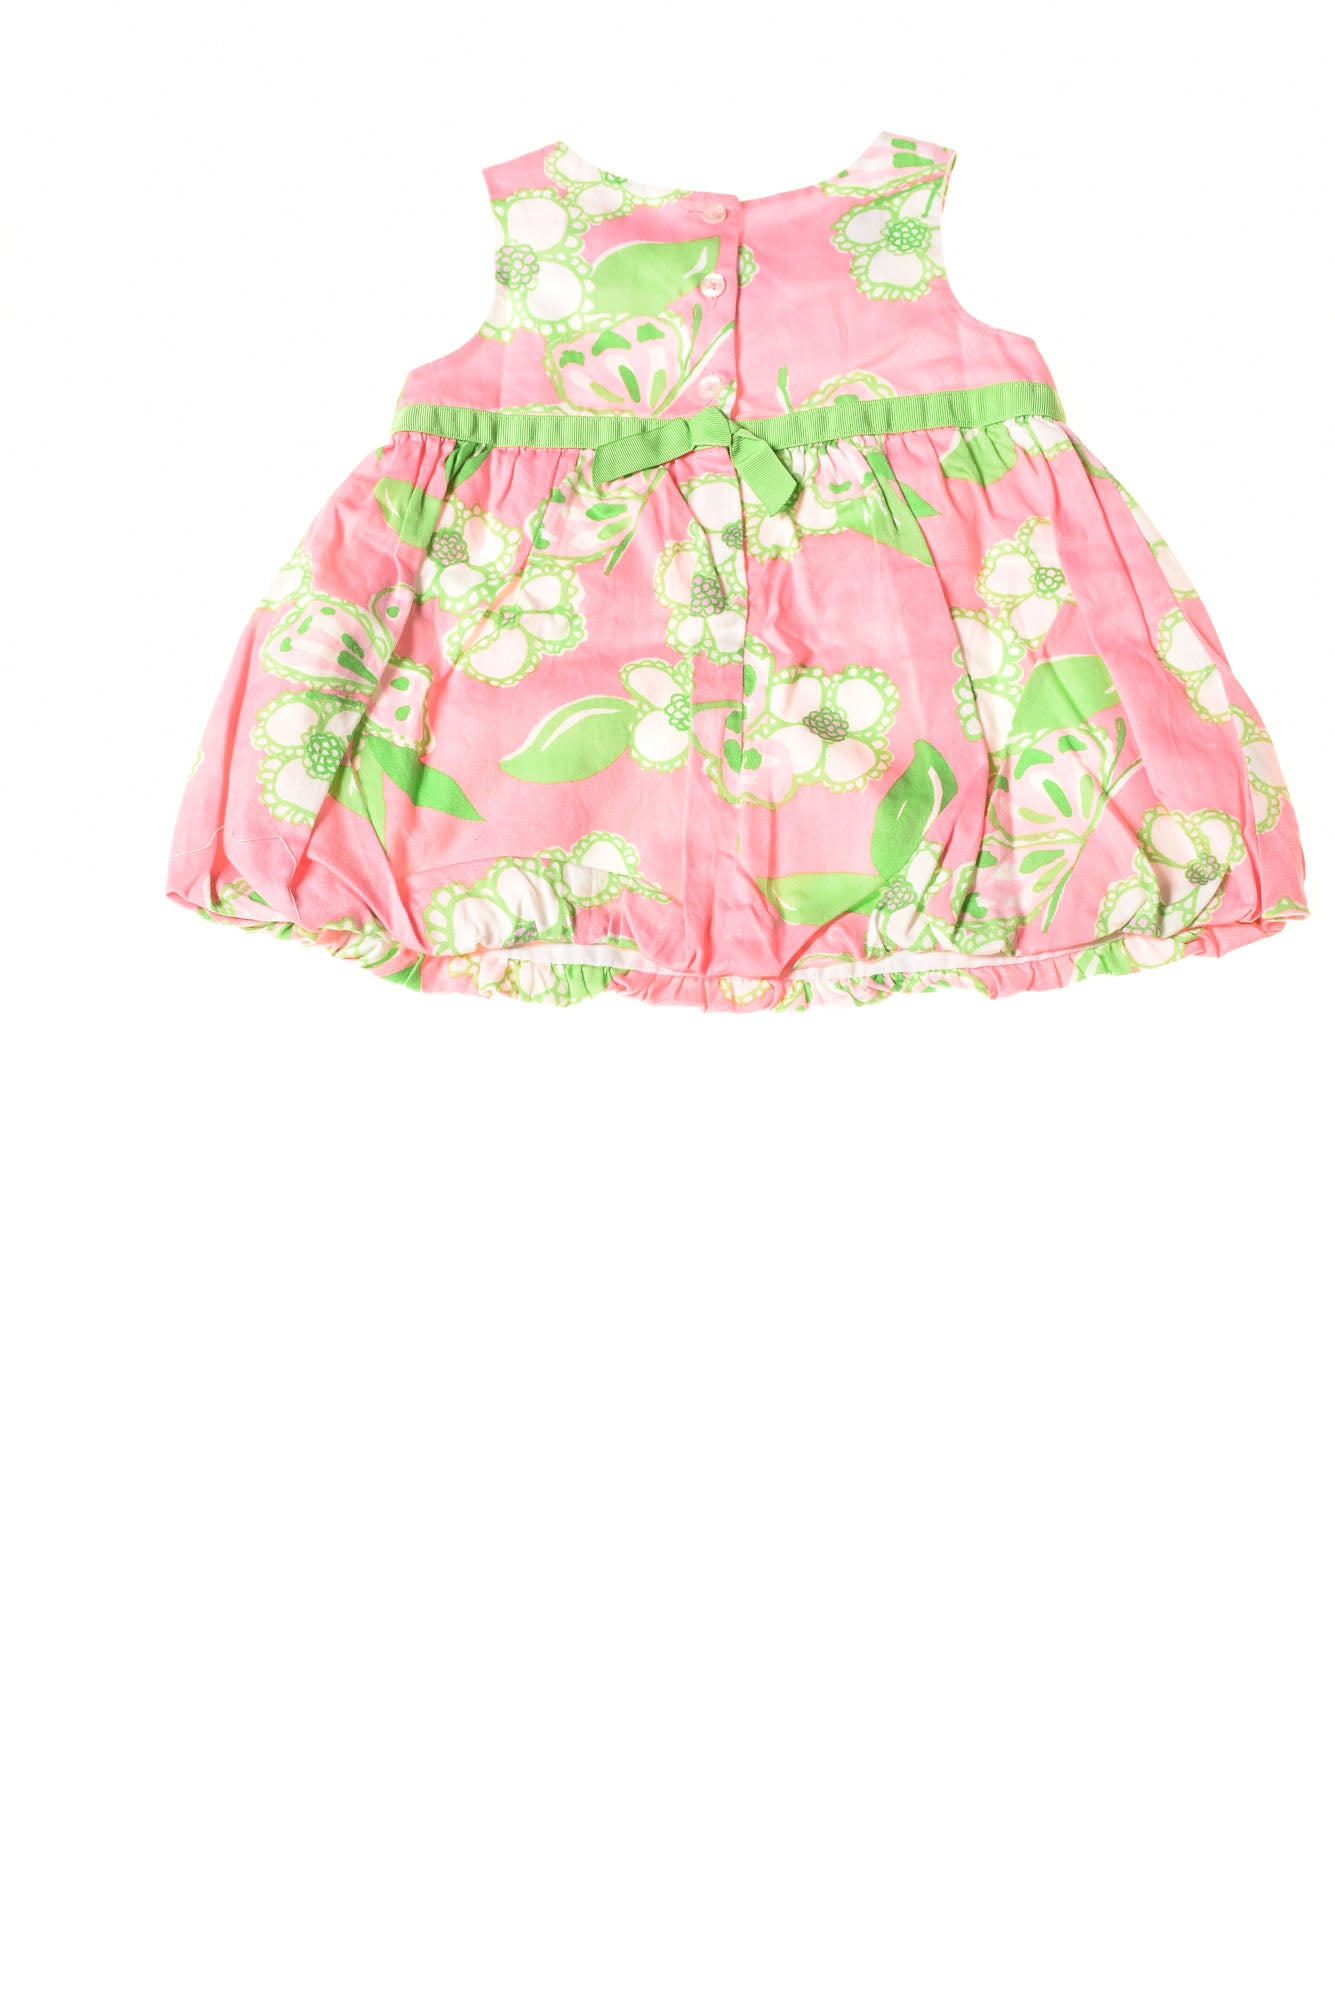 Baby Dress By Lilly Pulitzer Village Discount Outlet